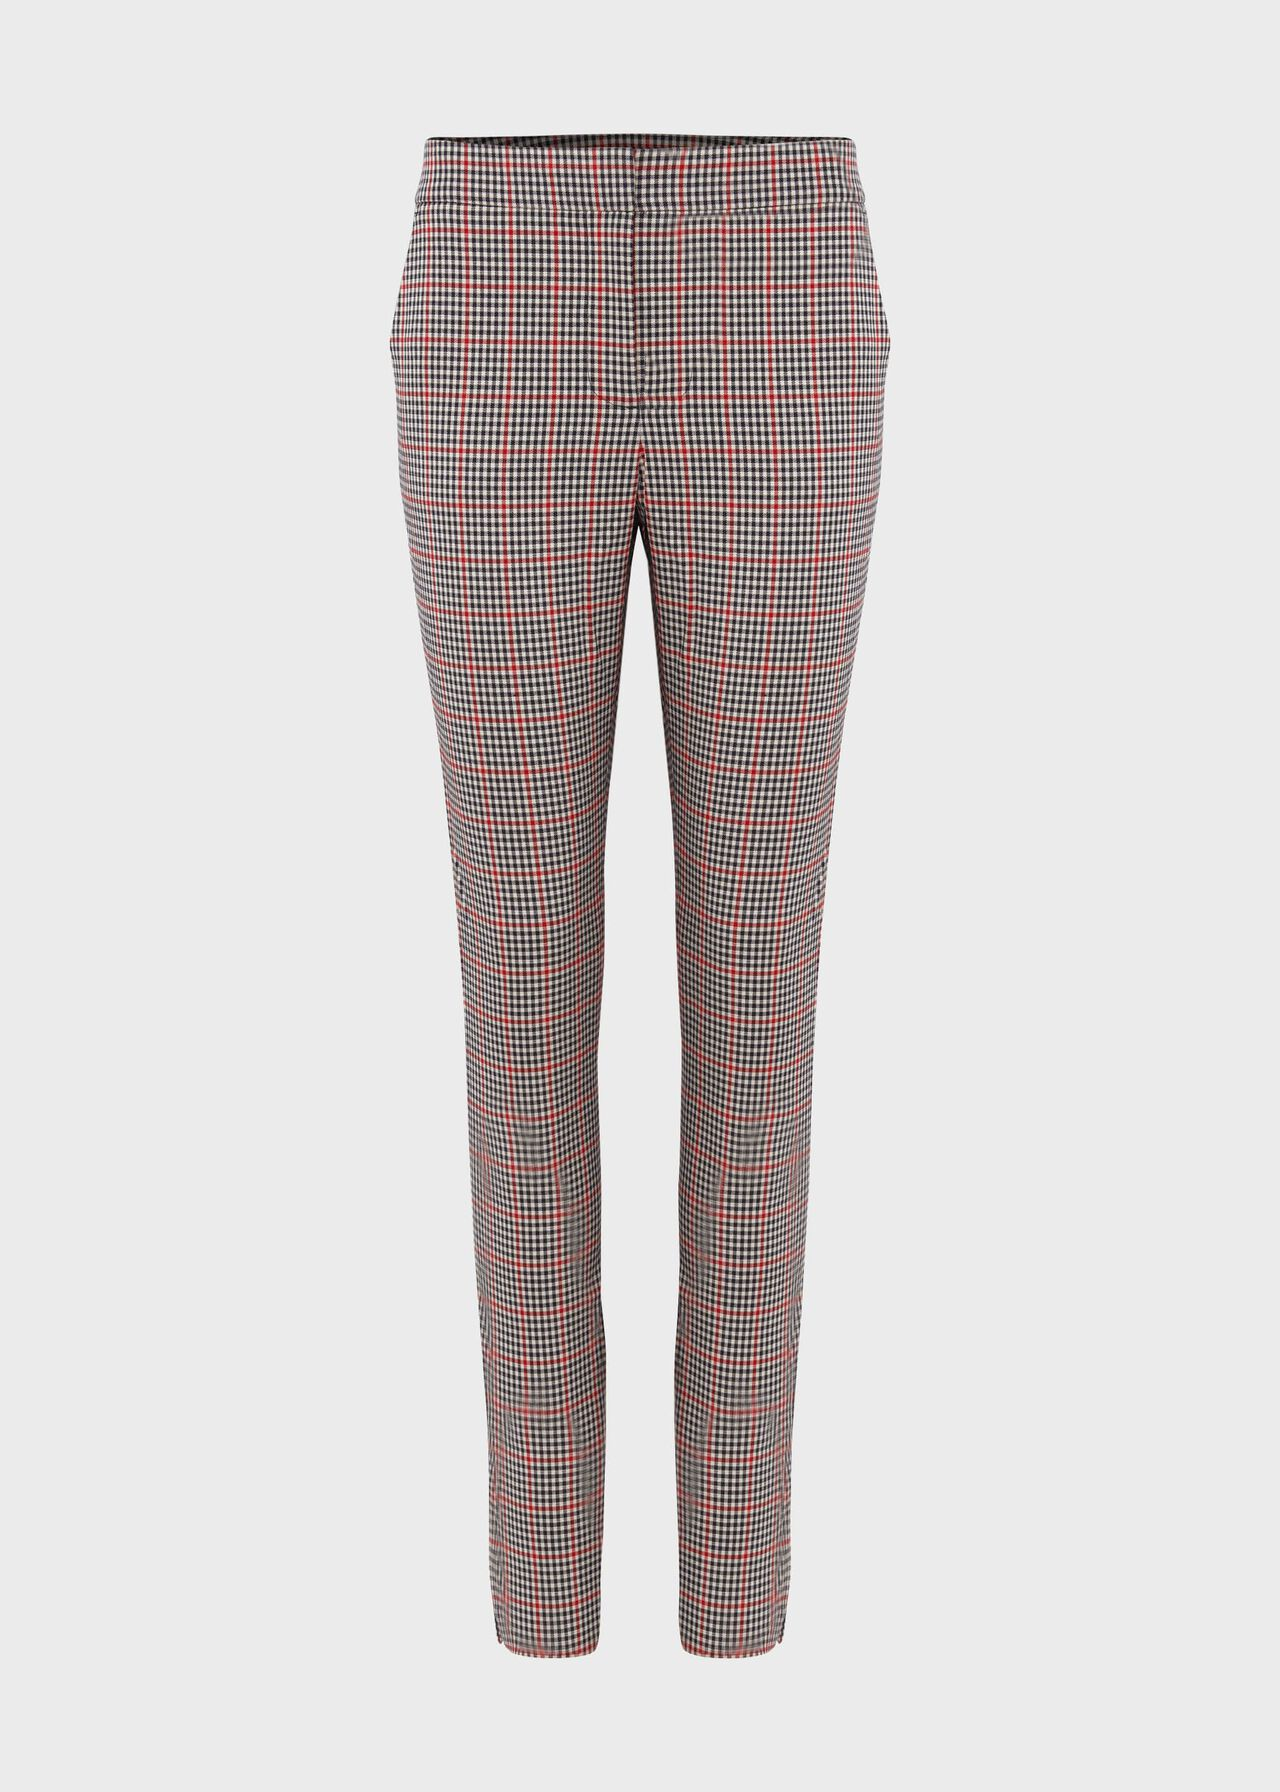 Annie Check Slim Trouser With Stretch Red Black